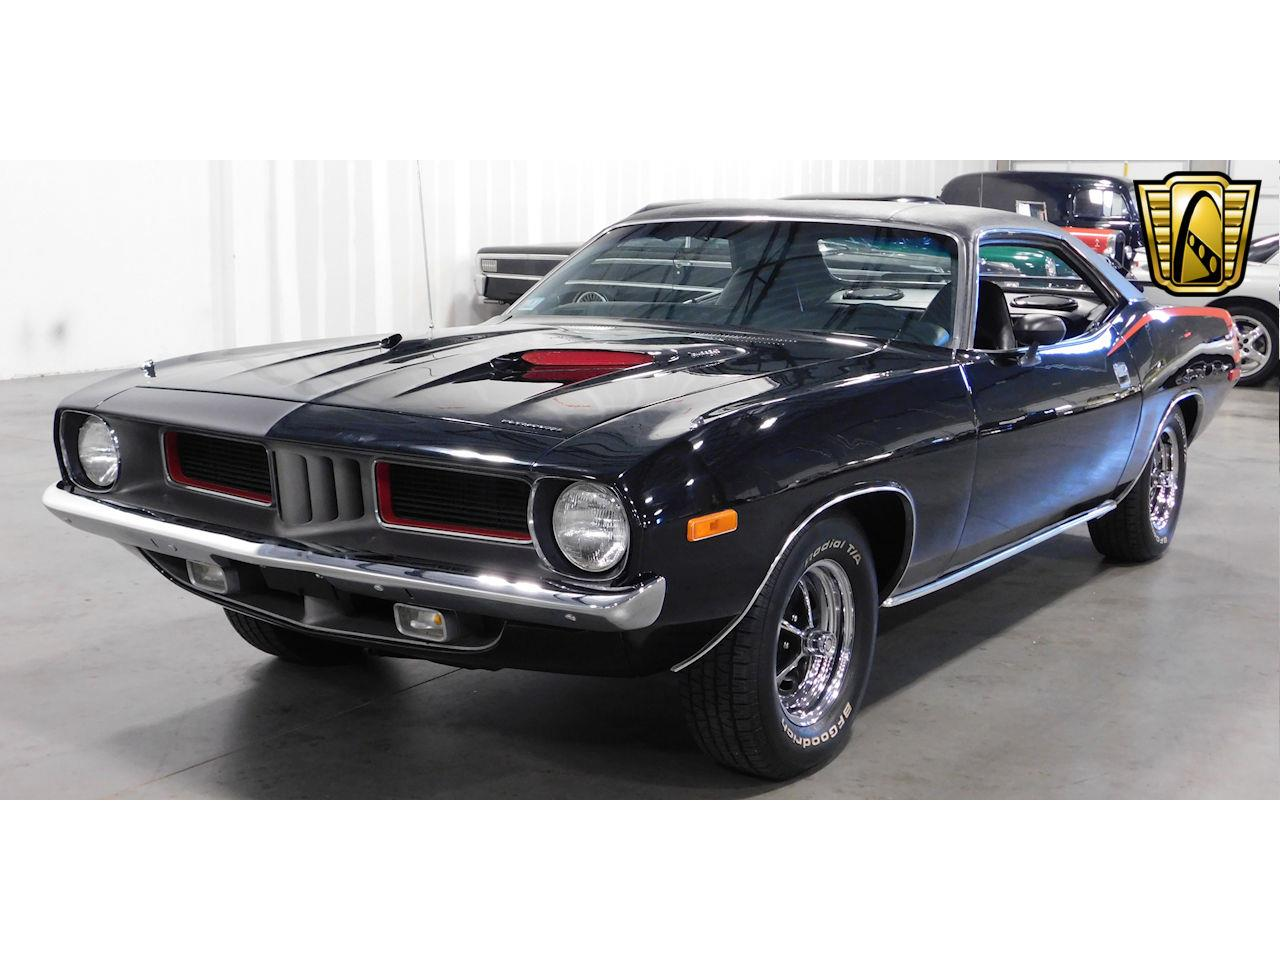 Large Picture of Classic 1972 Plymouth Barracuda located in Alpharetta Georgia - $44,995.00 Offered by Gateway Classic Cars - Atlanta - MZG1